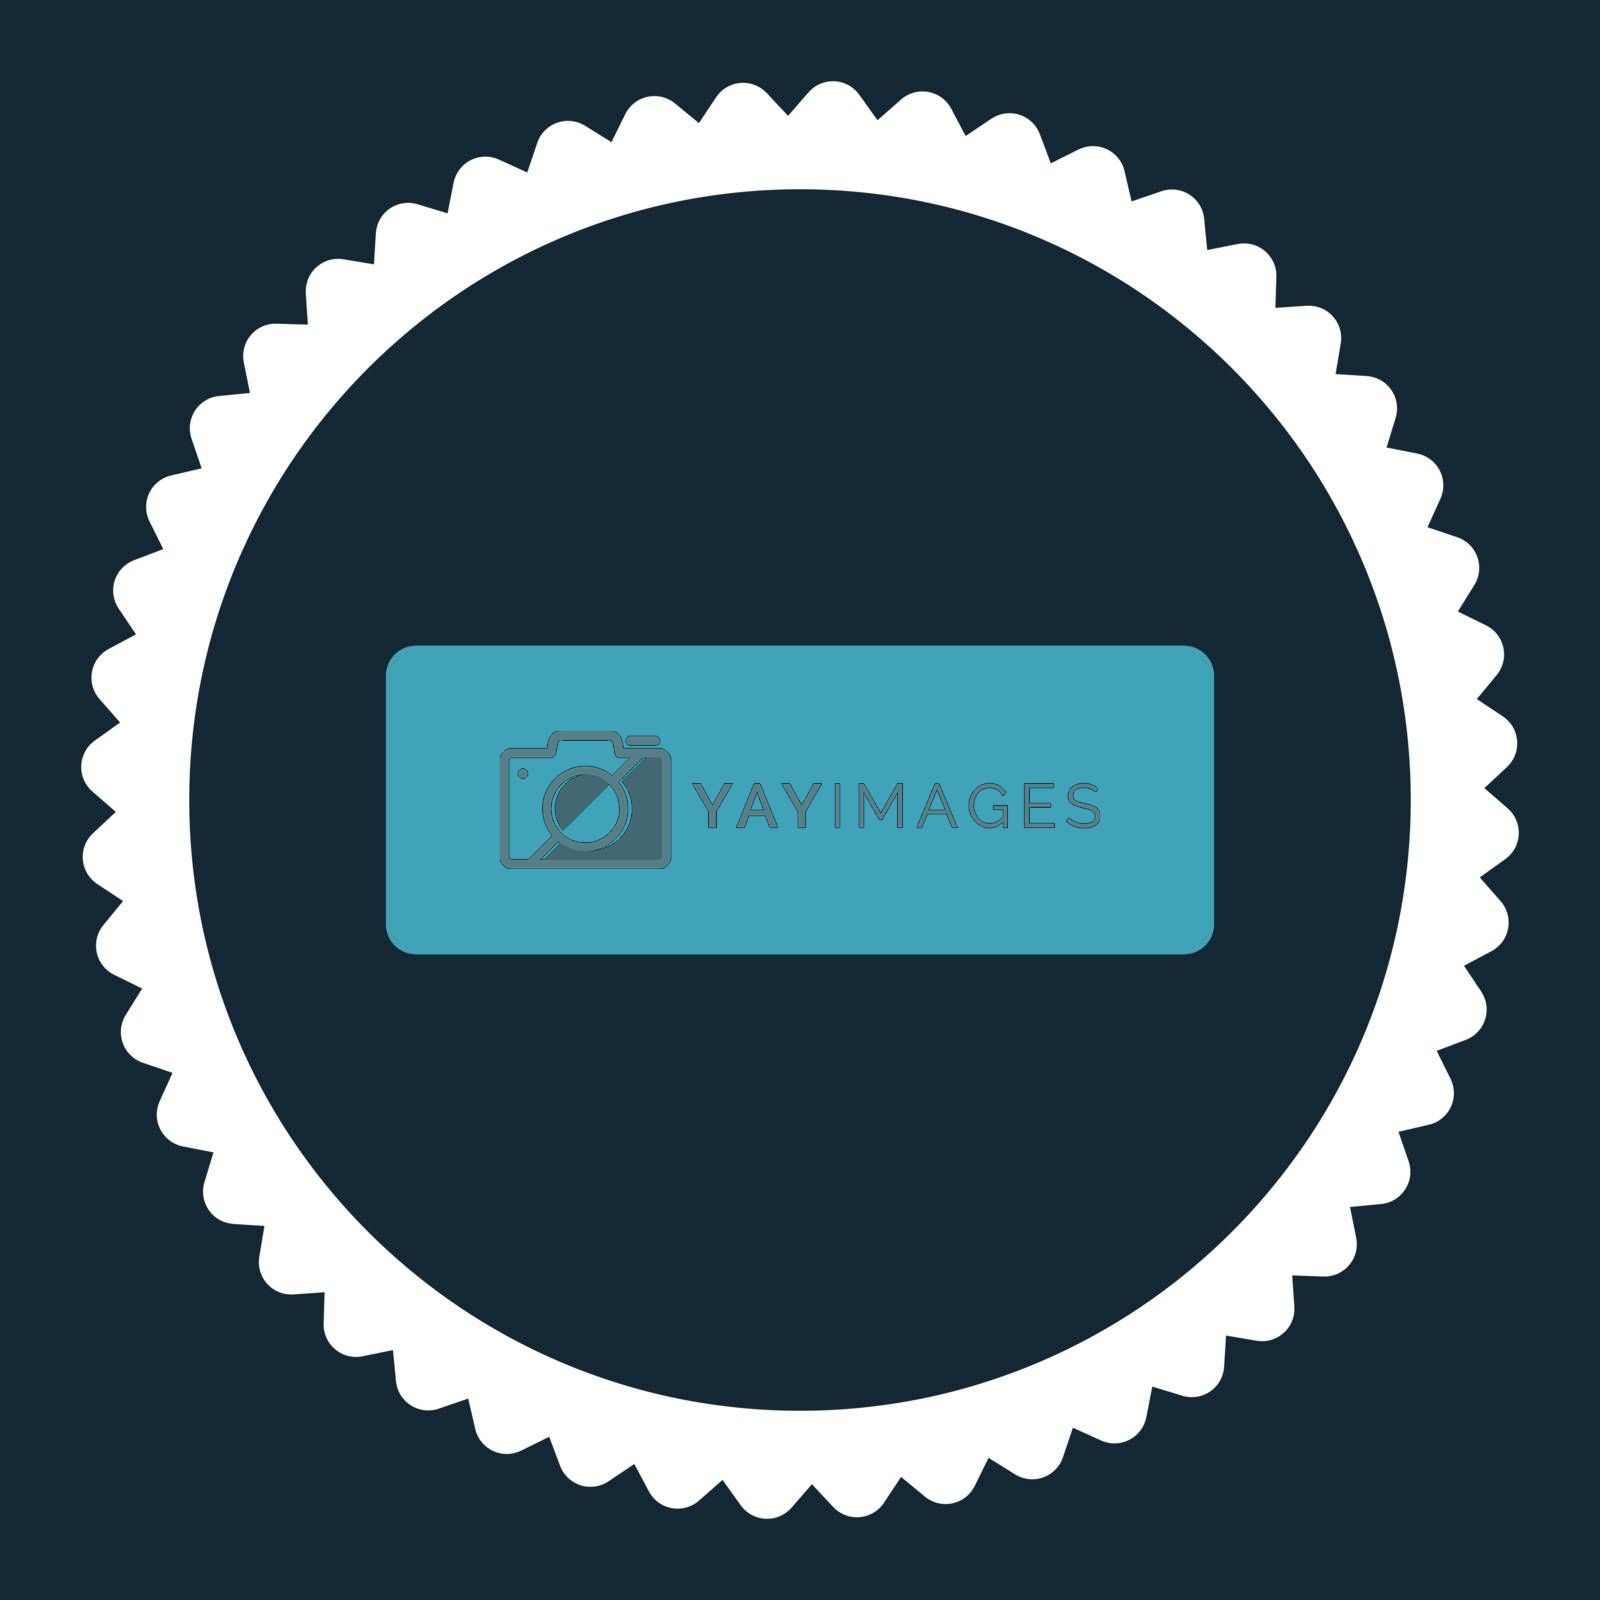 Minus flat blue and white colors round stamp icon by Aha-Soft